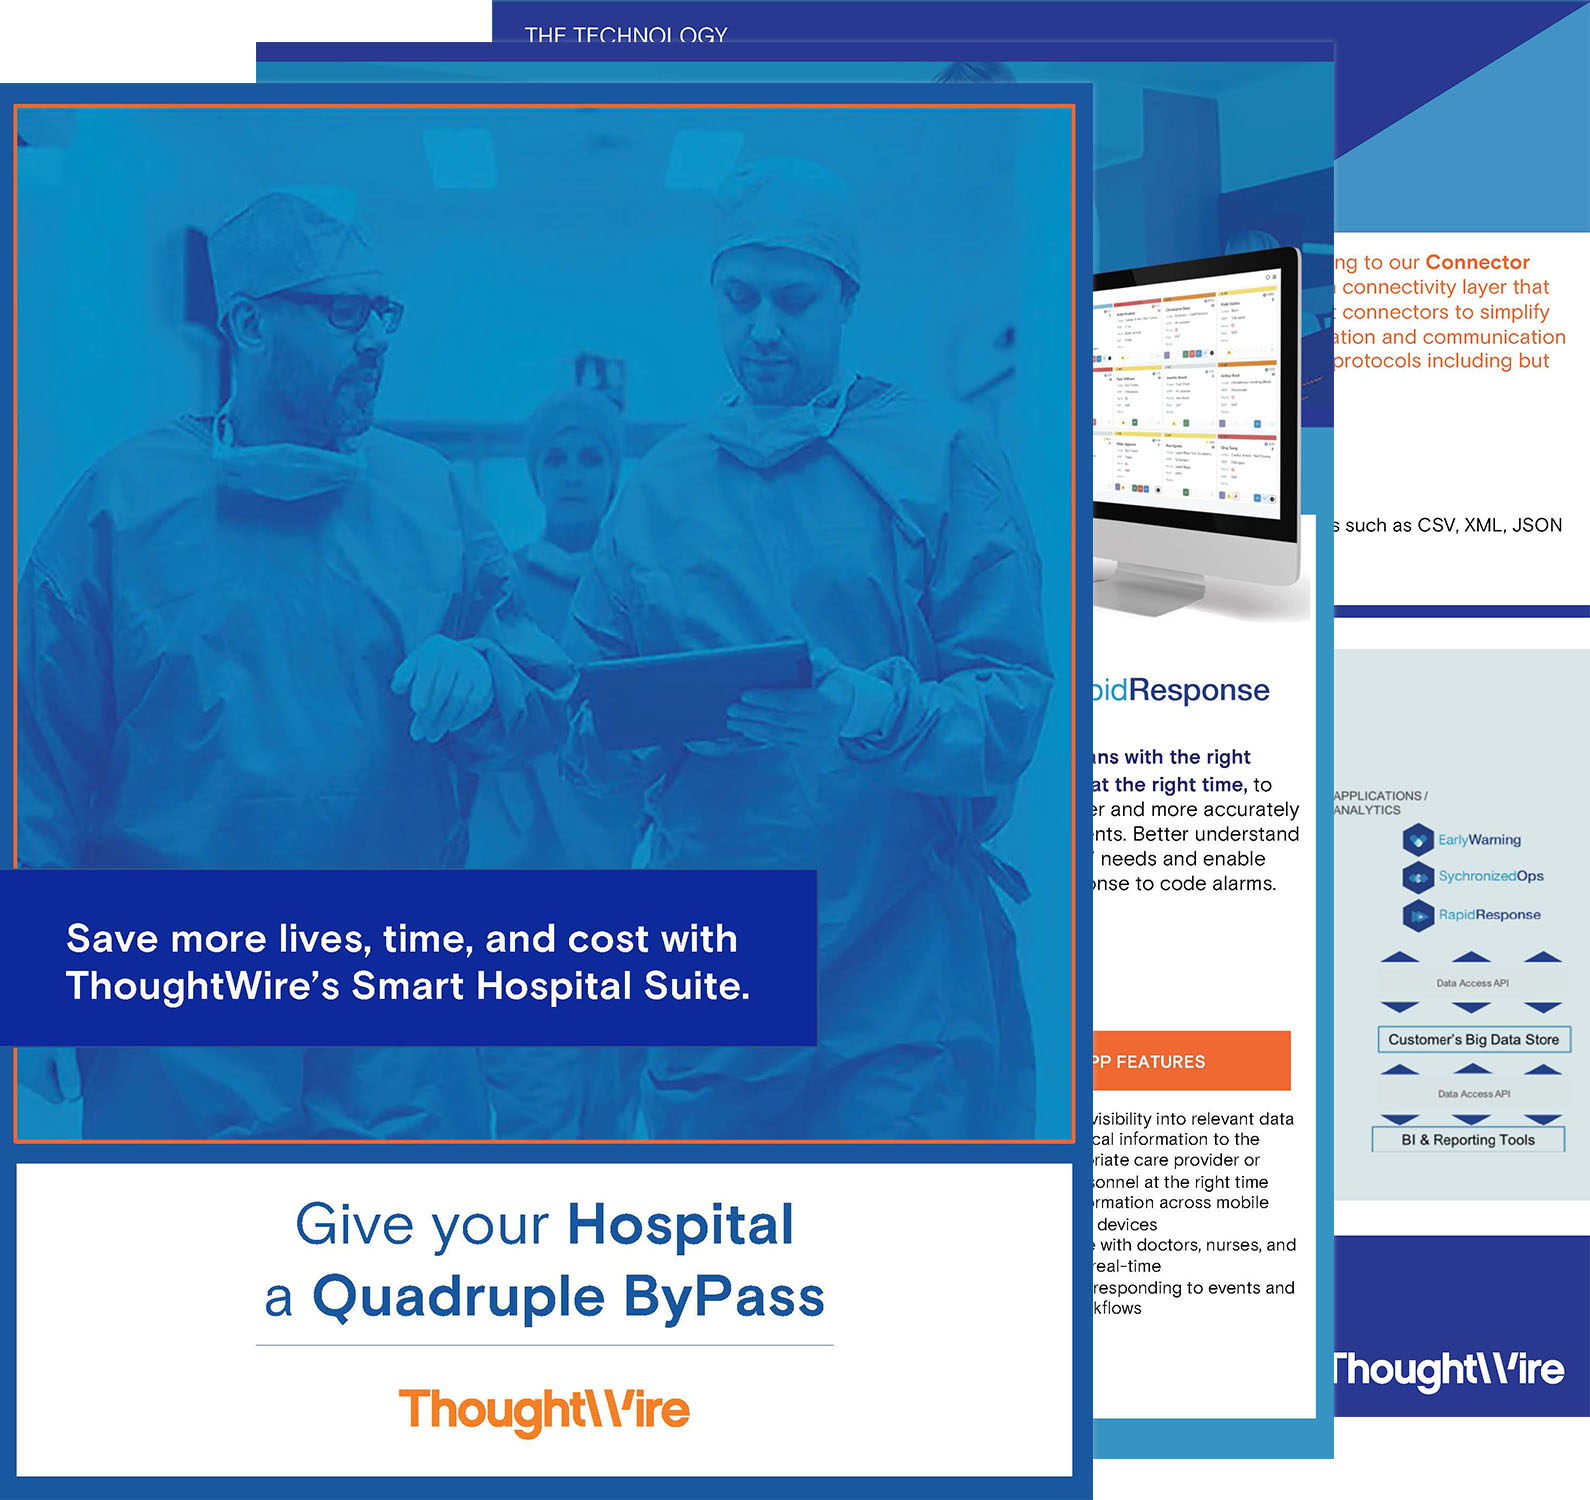 Give your Hospital a Quadruple ByPass Brochure